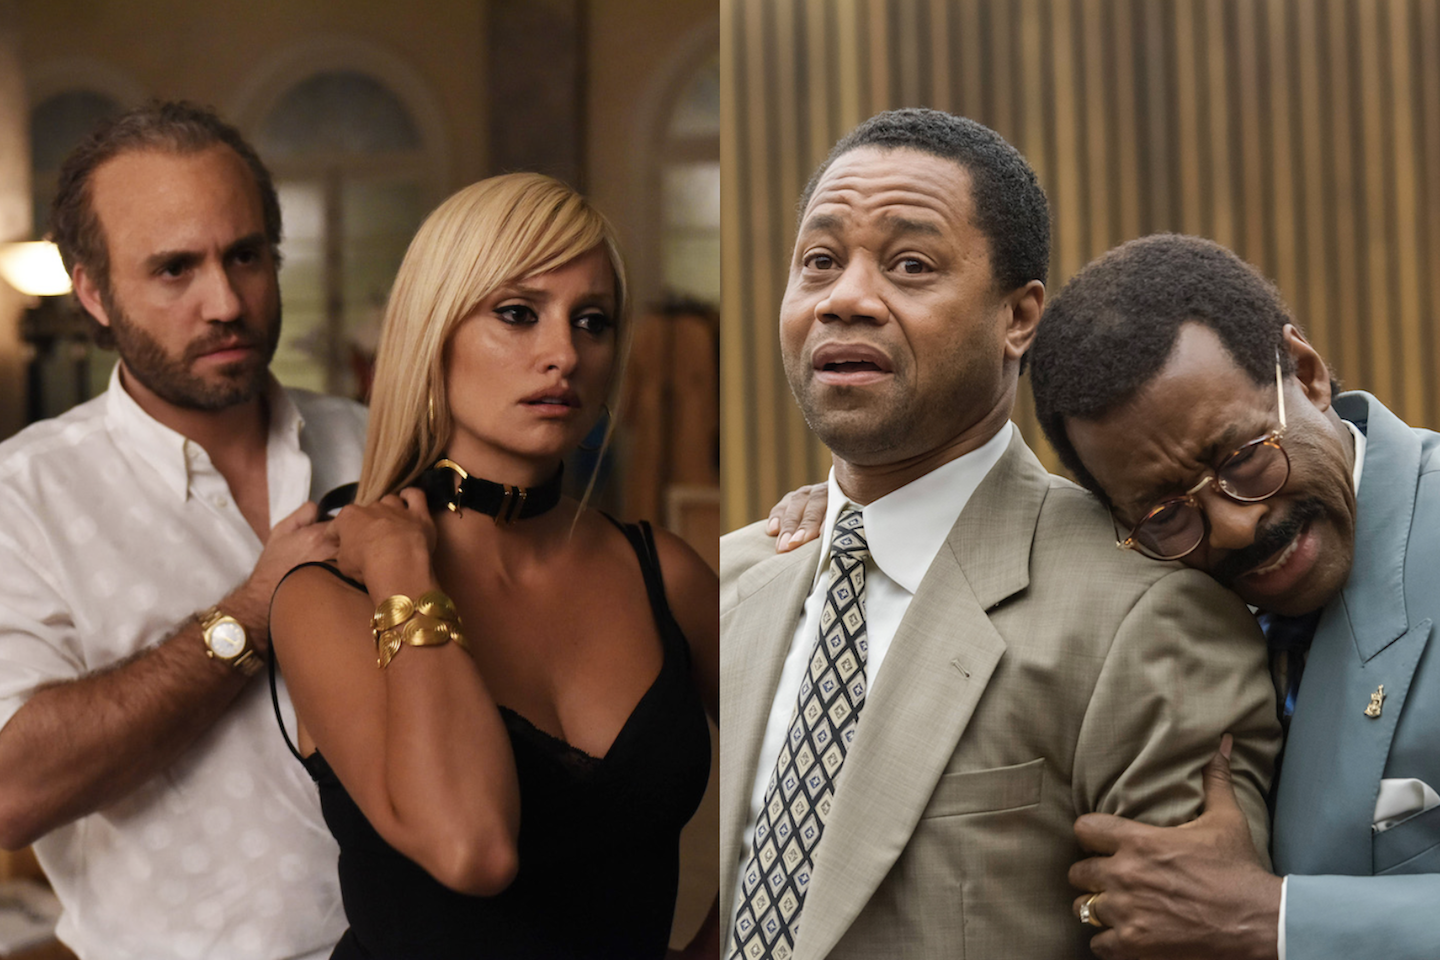 Édgar Ramírez and Penelope Cruz in 'The Assassination of Gianni Versace' (left); Cuba Gooding Jr. and Courtney B. Vance in 'The People v. O. J. Simpson' (right).